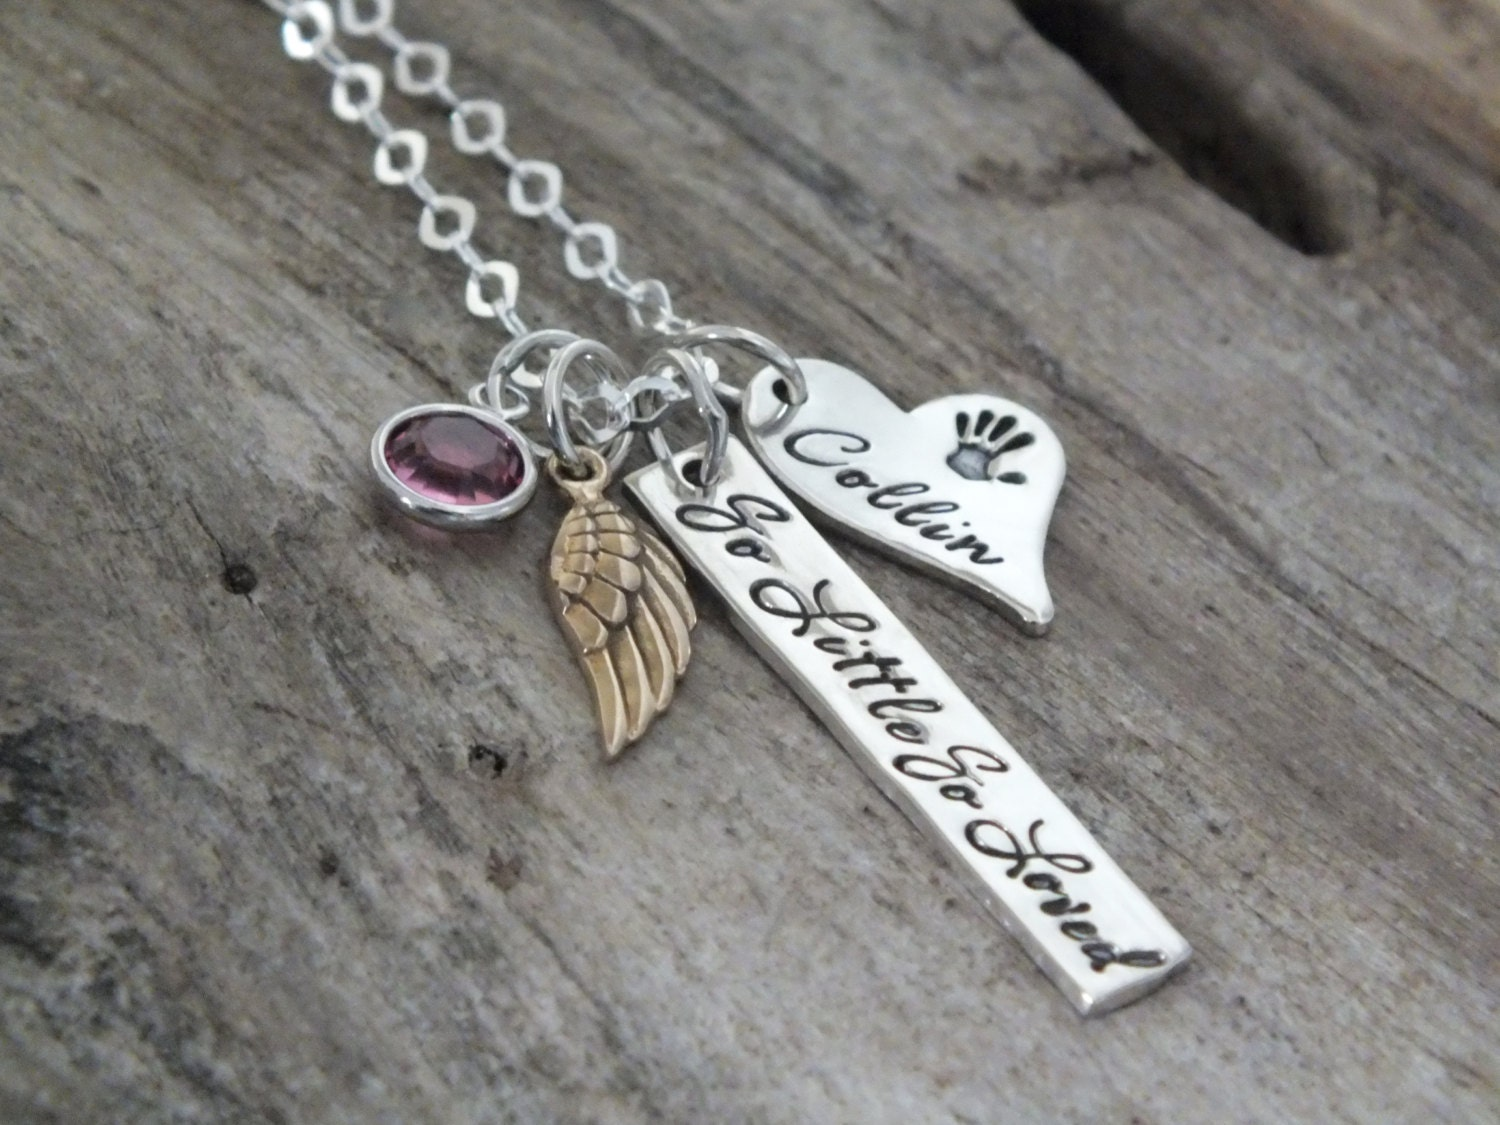 Miscarriage keepsake miscarriage necklace sterling silver miscarriage keepsake miscarriage necklace sterling silver miscarriage jewelry miscarriage gift miscarriage memorial baby loss gift aloadofball Images